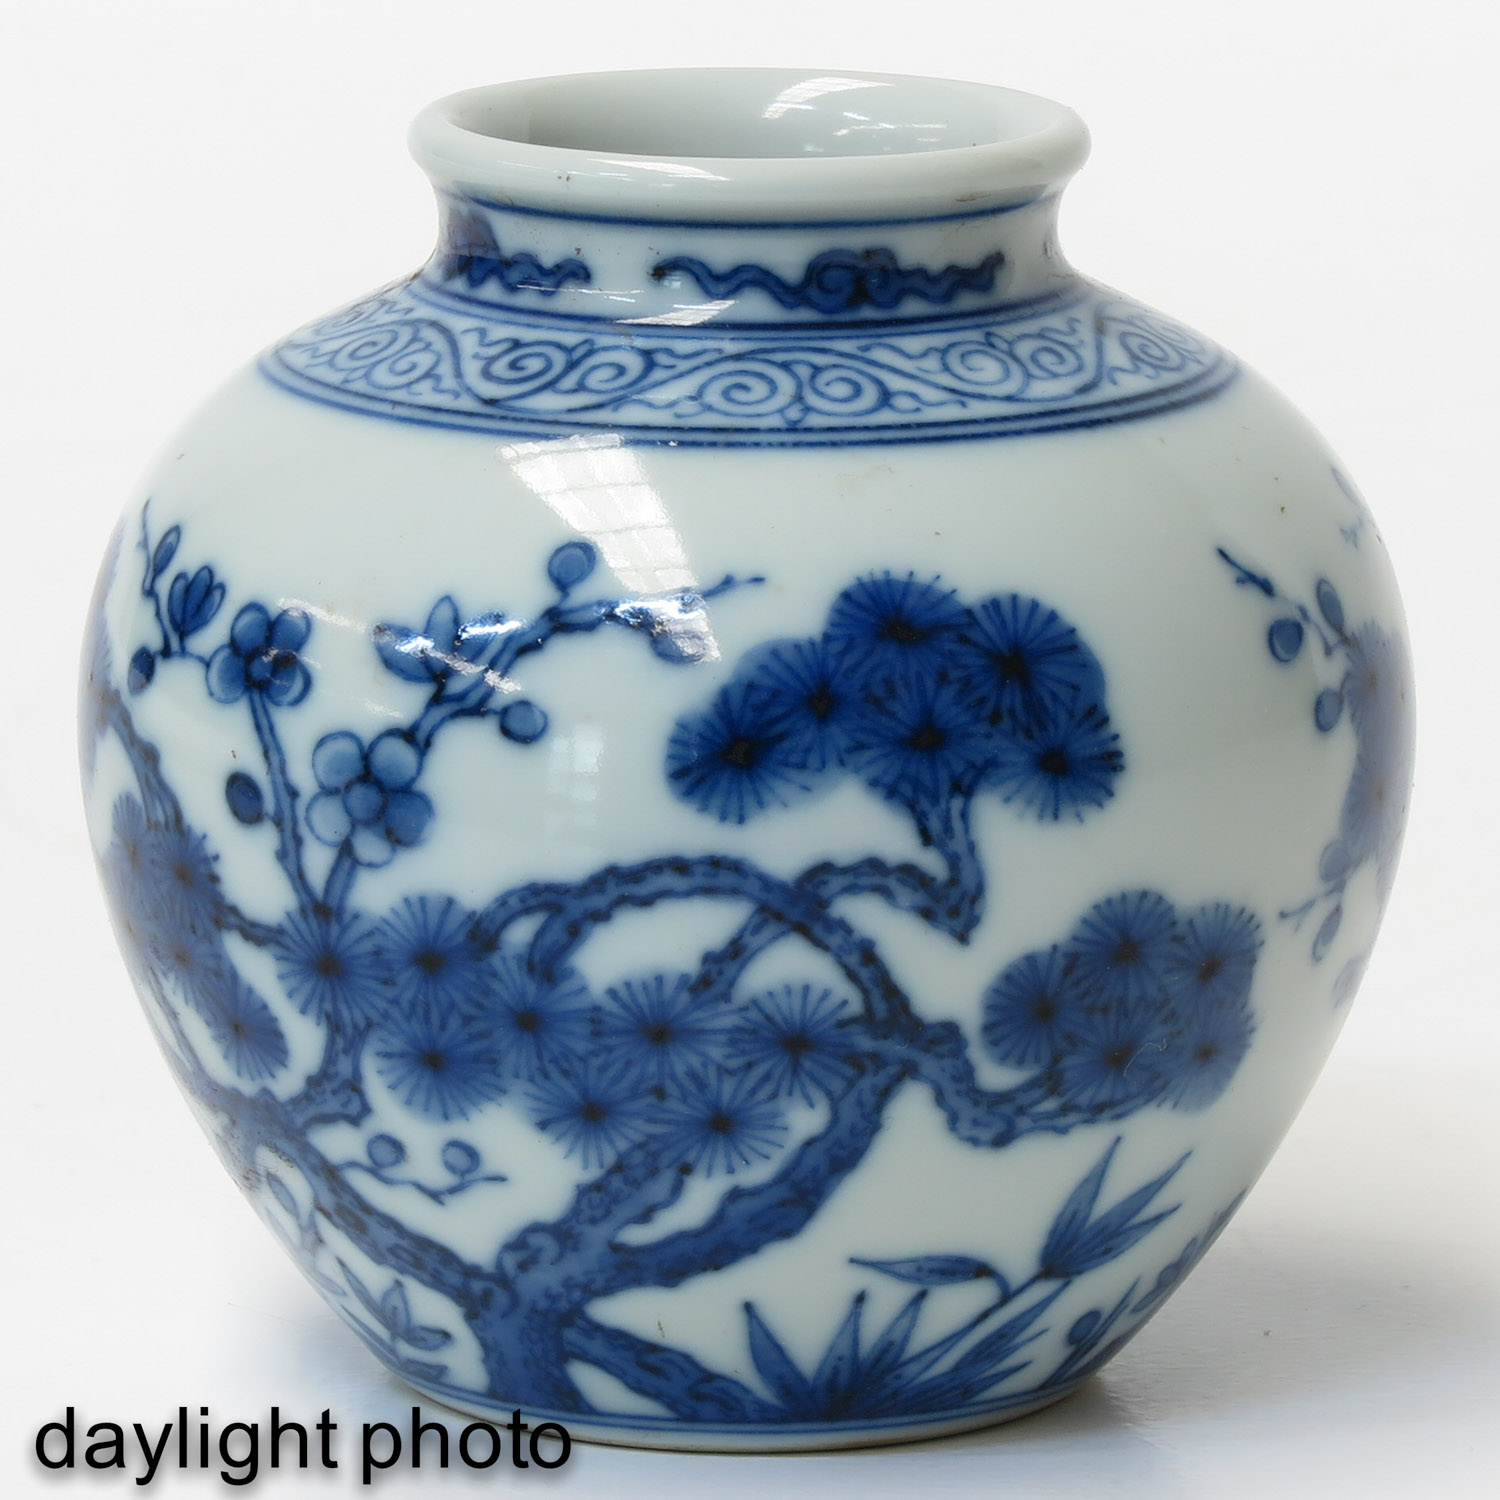 A Small Blue and White Vase - Image 7 of 9